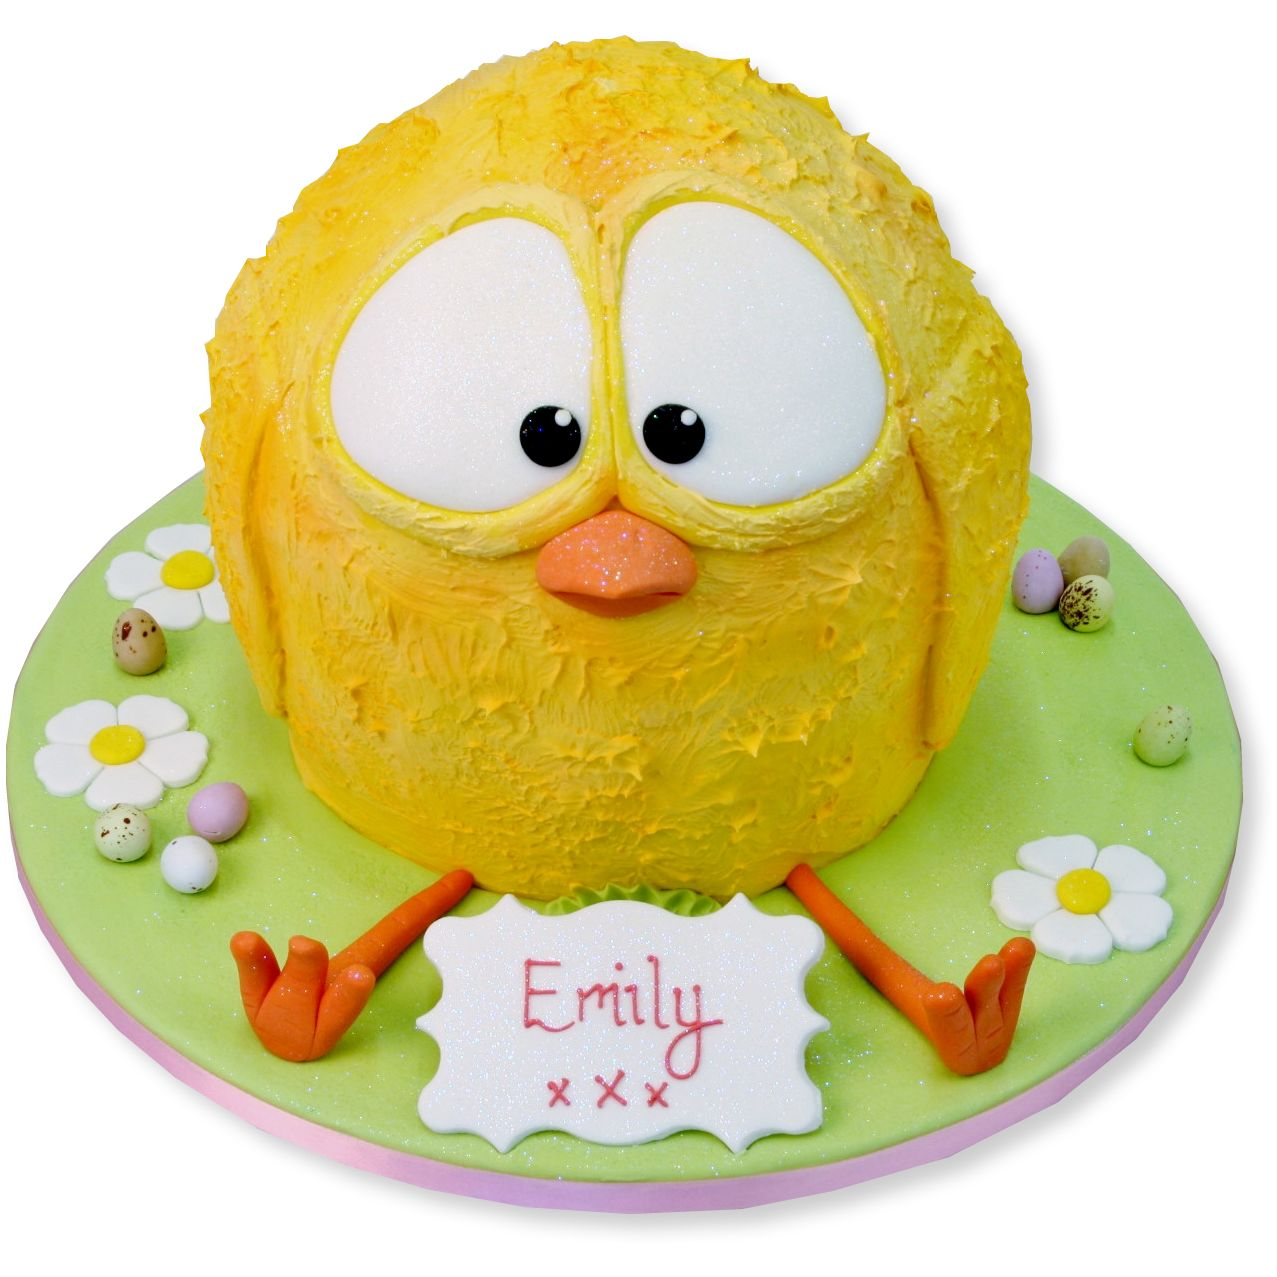 Image detail for Home Novelty Cakes Childrens Birthday Cakes Cute